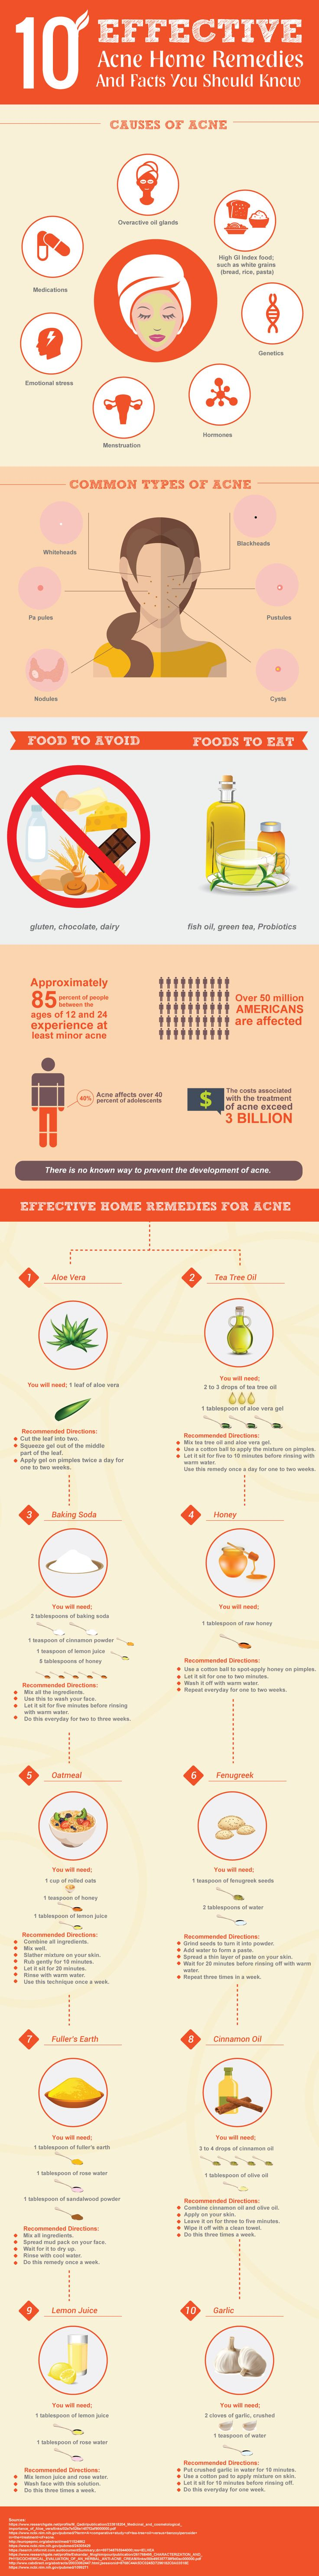 Acne can be frustration. For most cases you can get rid of them using simple home remedies. Here you will find some effective remedies to try.